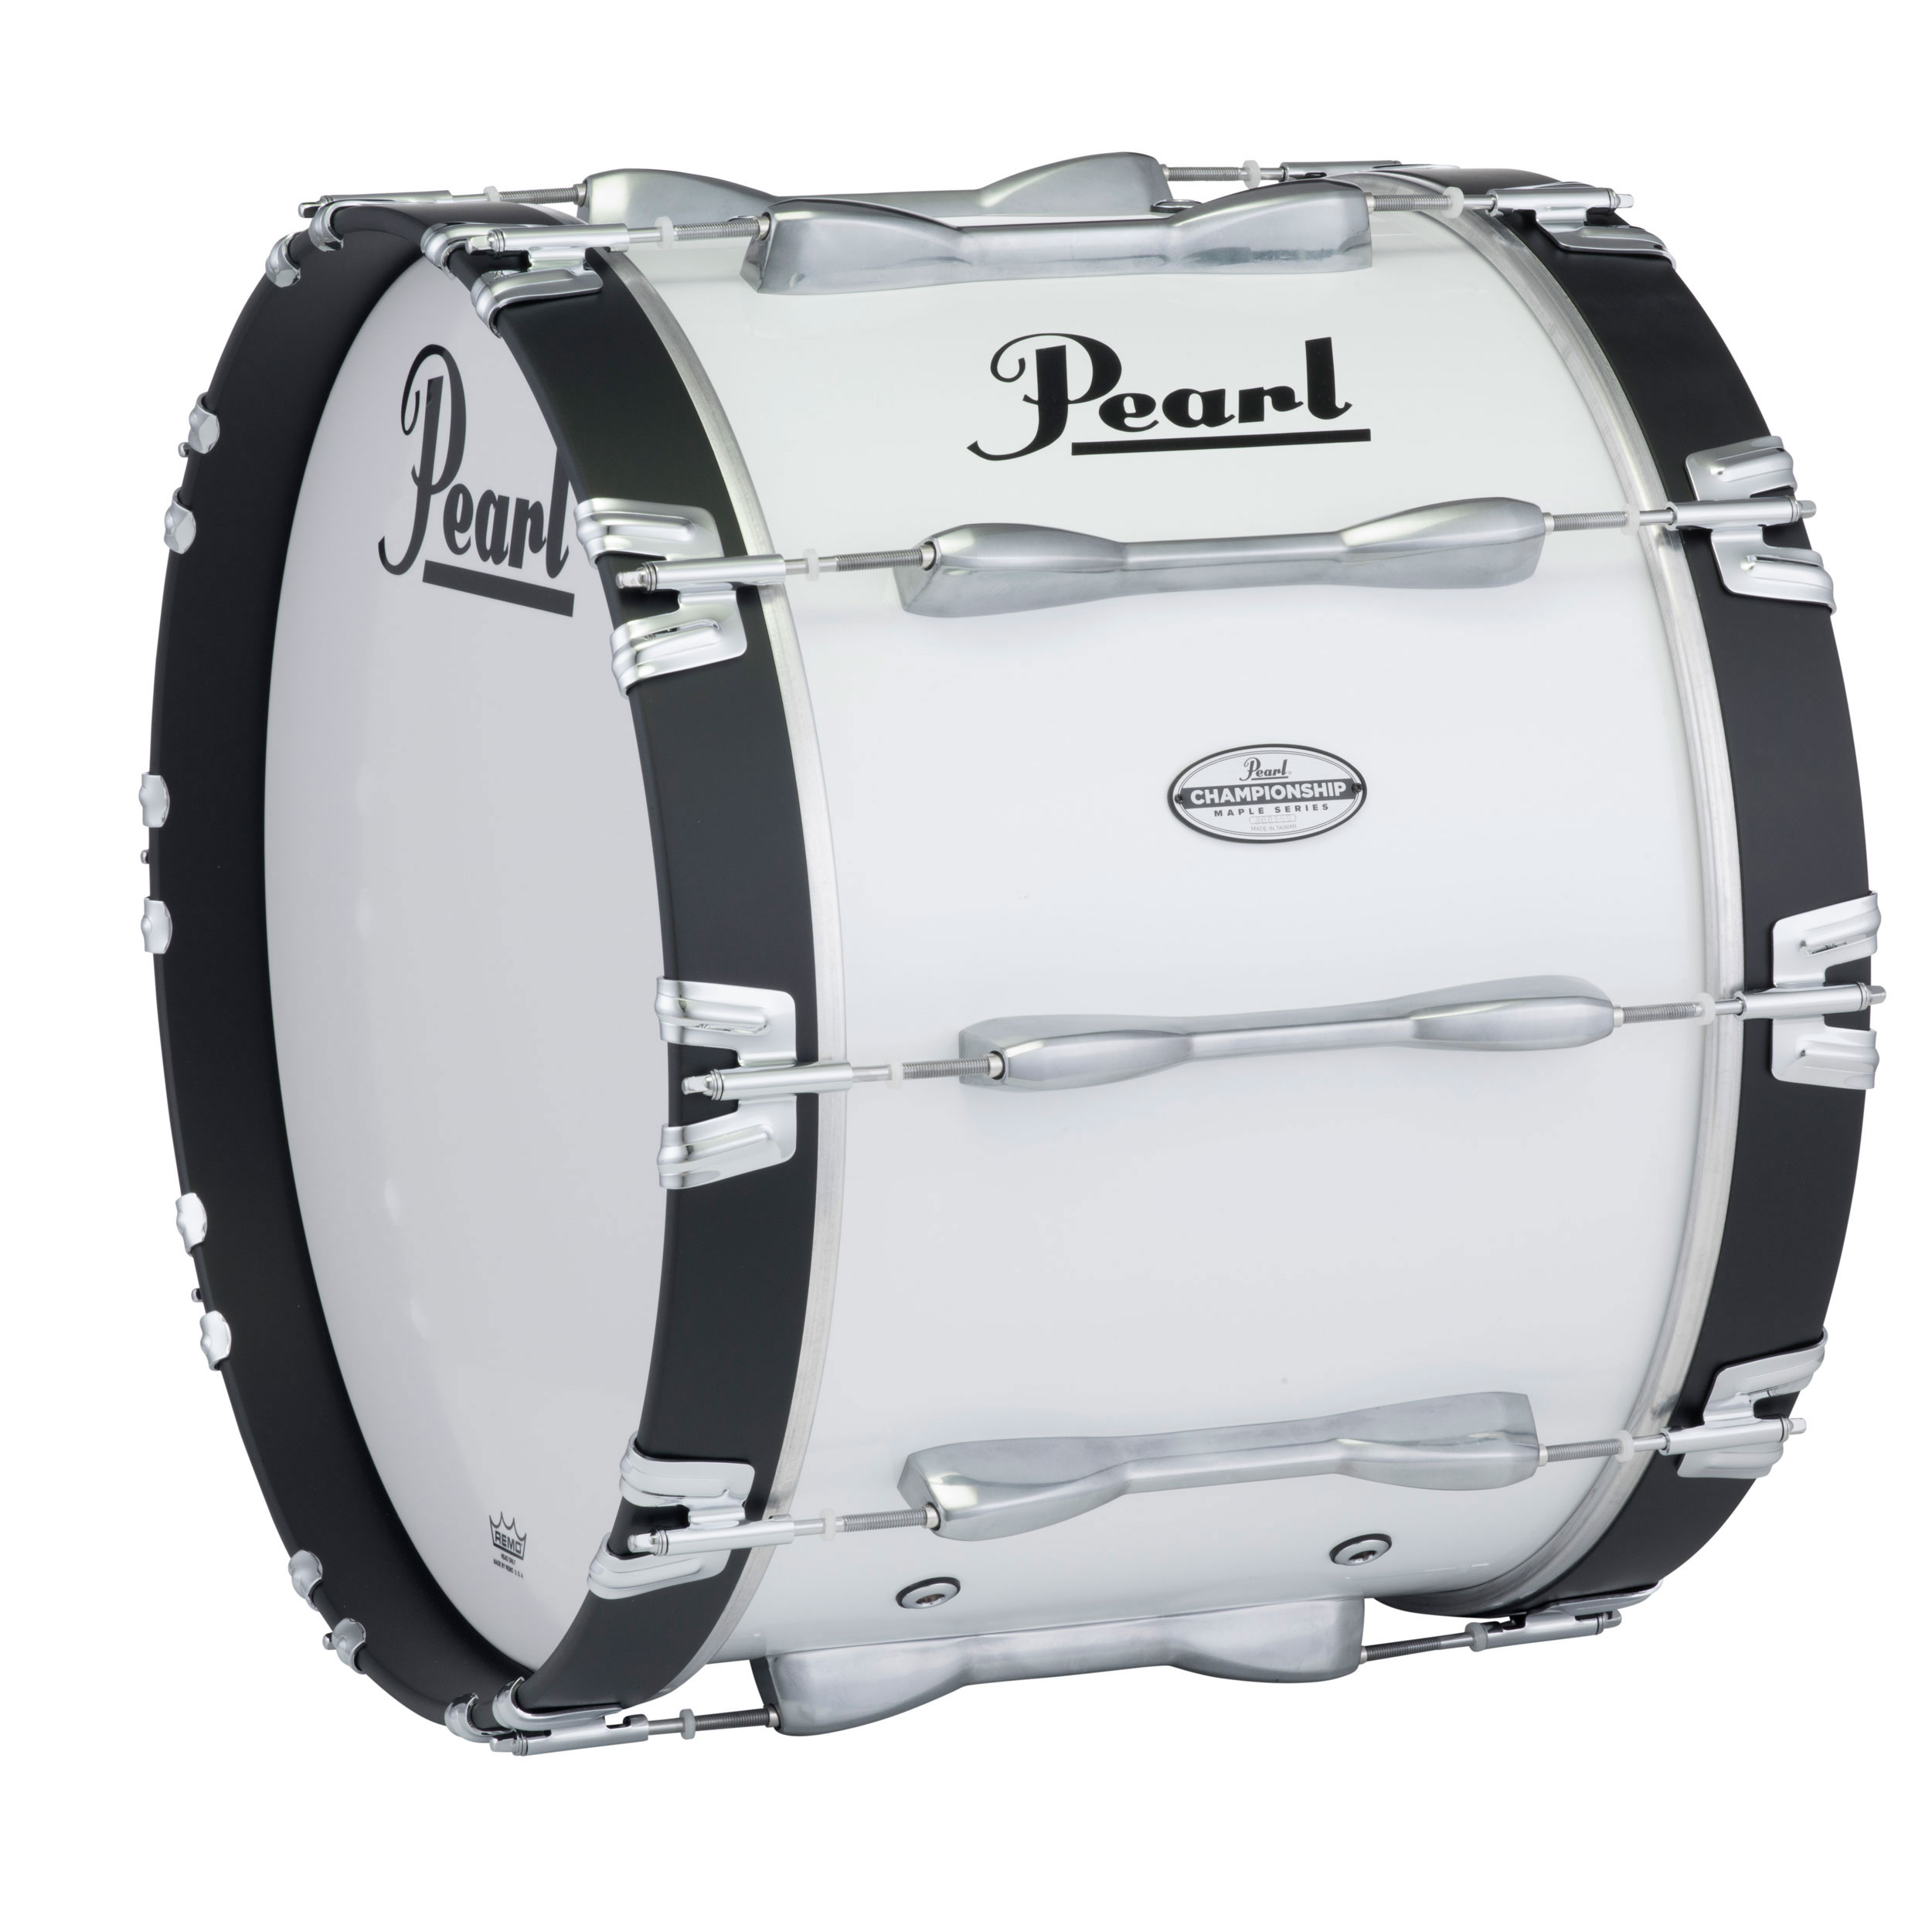 "Pearl 22"" PBDM Championship Maple Marching Bass Drum in Wrap Finish"